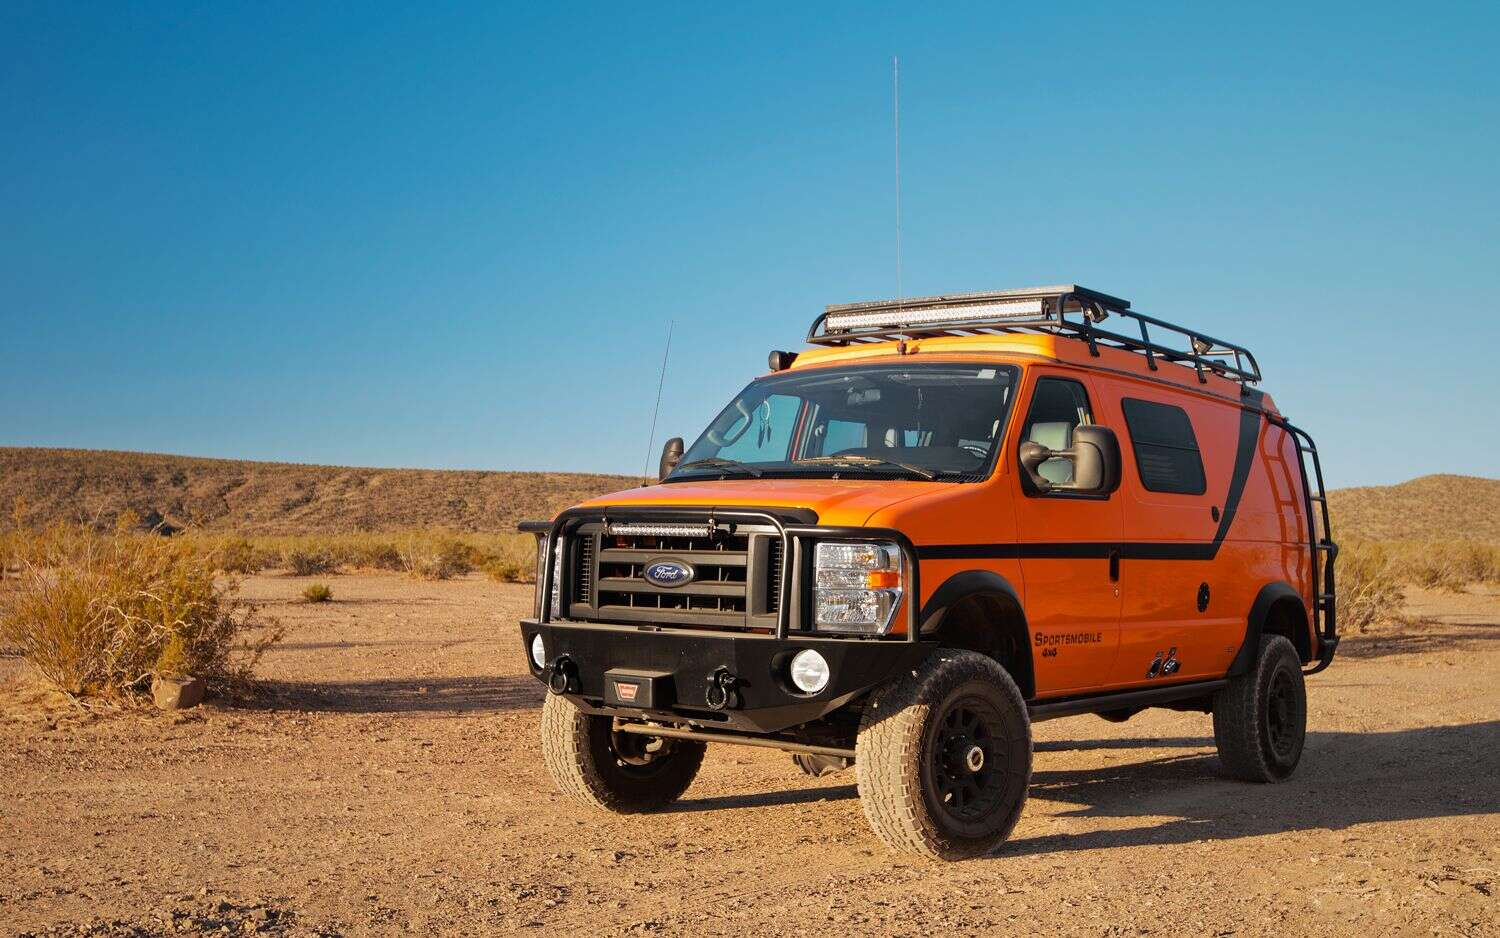 bf2d515f07 http   www.trucktrend.com truck-reviews 163-1304-travel-sportsmobile-4wd -ford-e-series